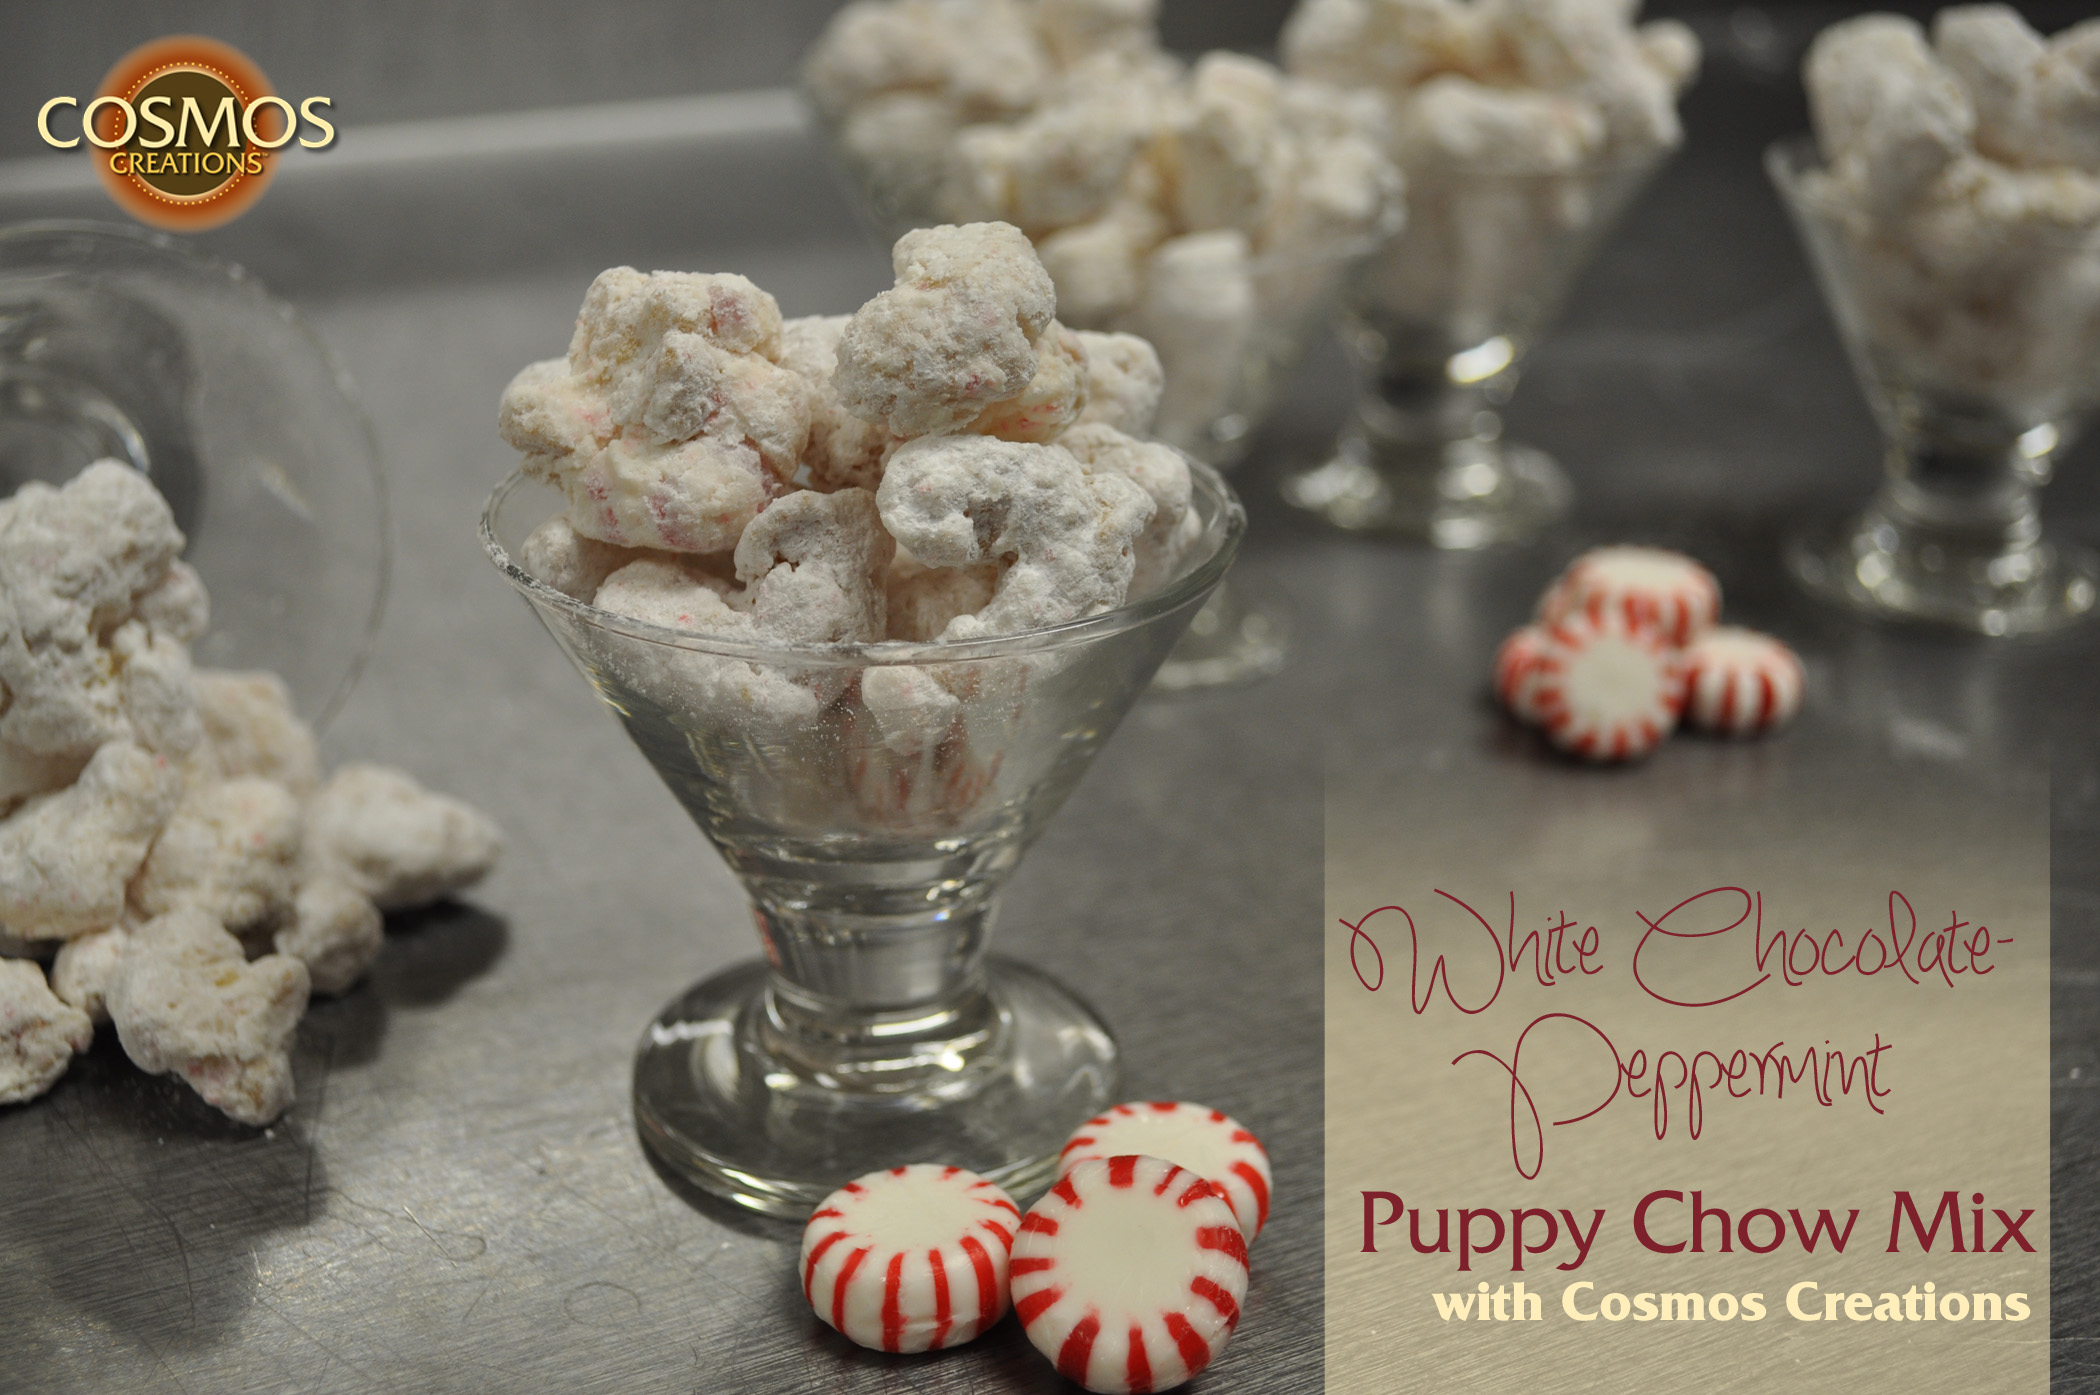 White Chocolate Peppermint Puppy Chow with Cosmos Creations